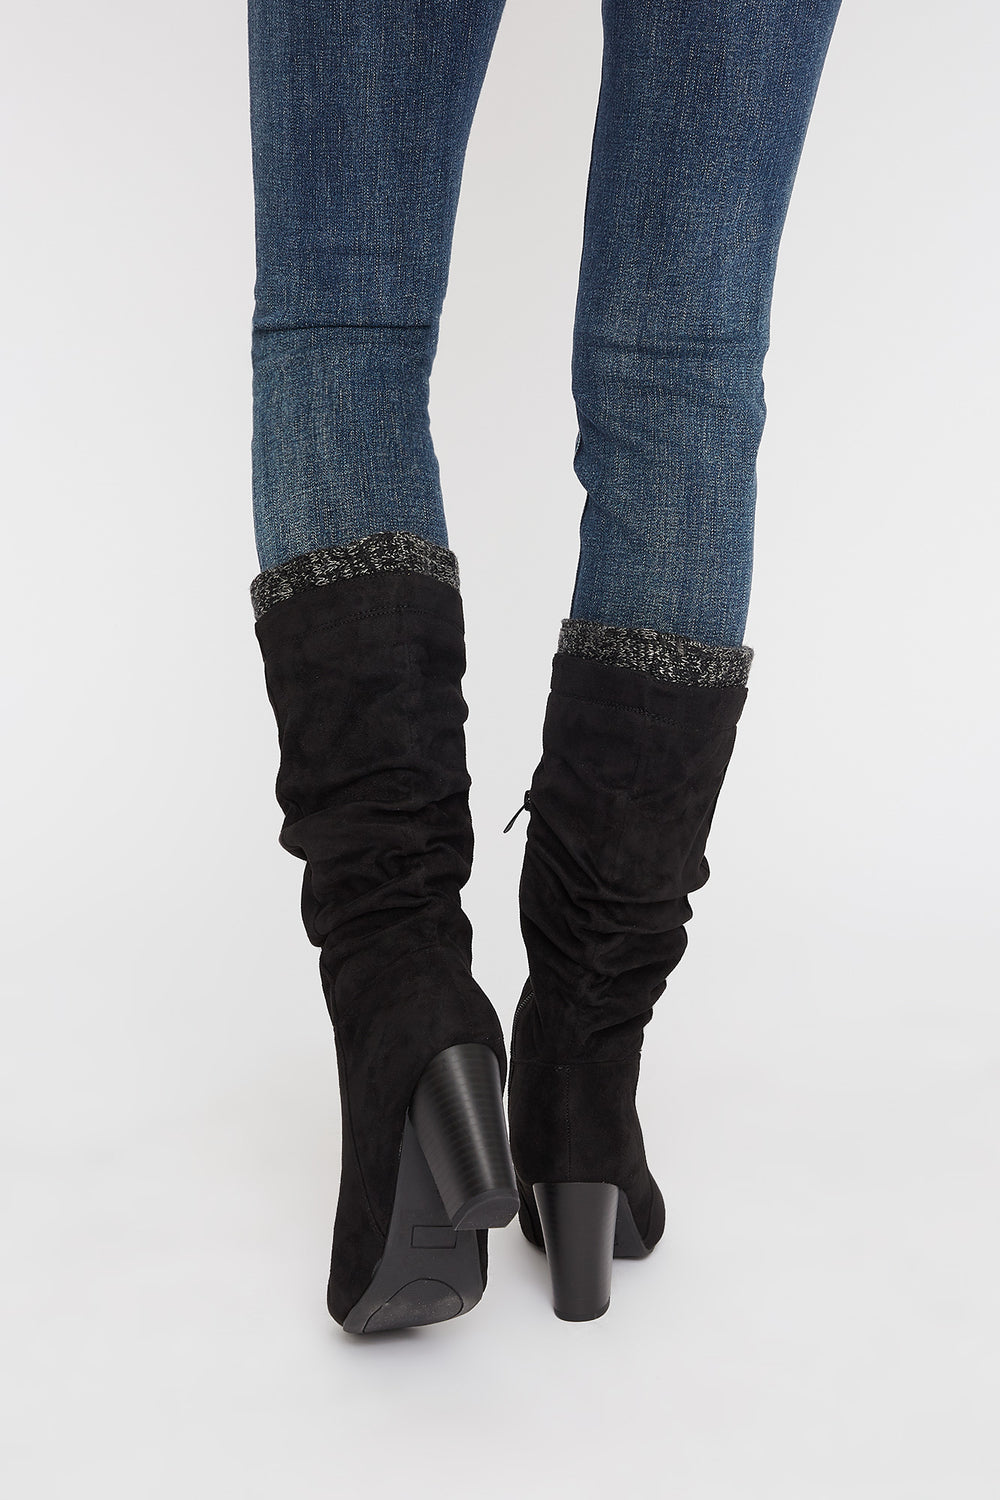 Ruched Knit Mid Calf High Heel Boot Black